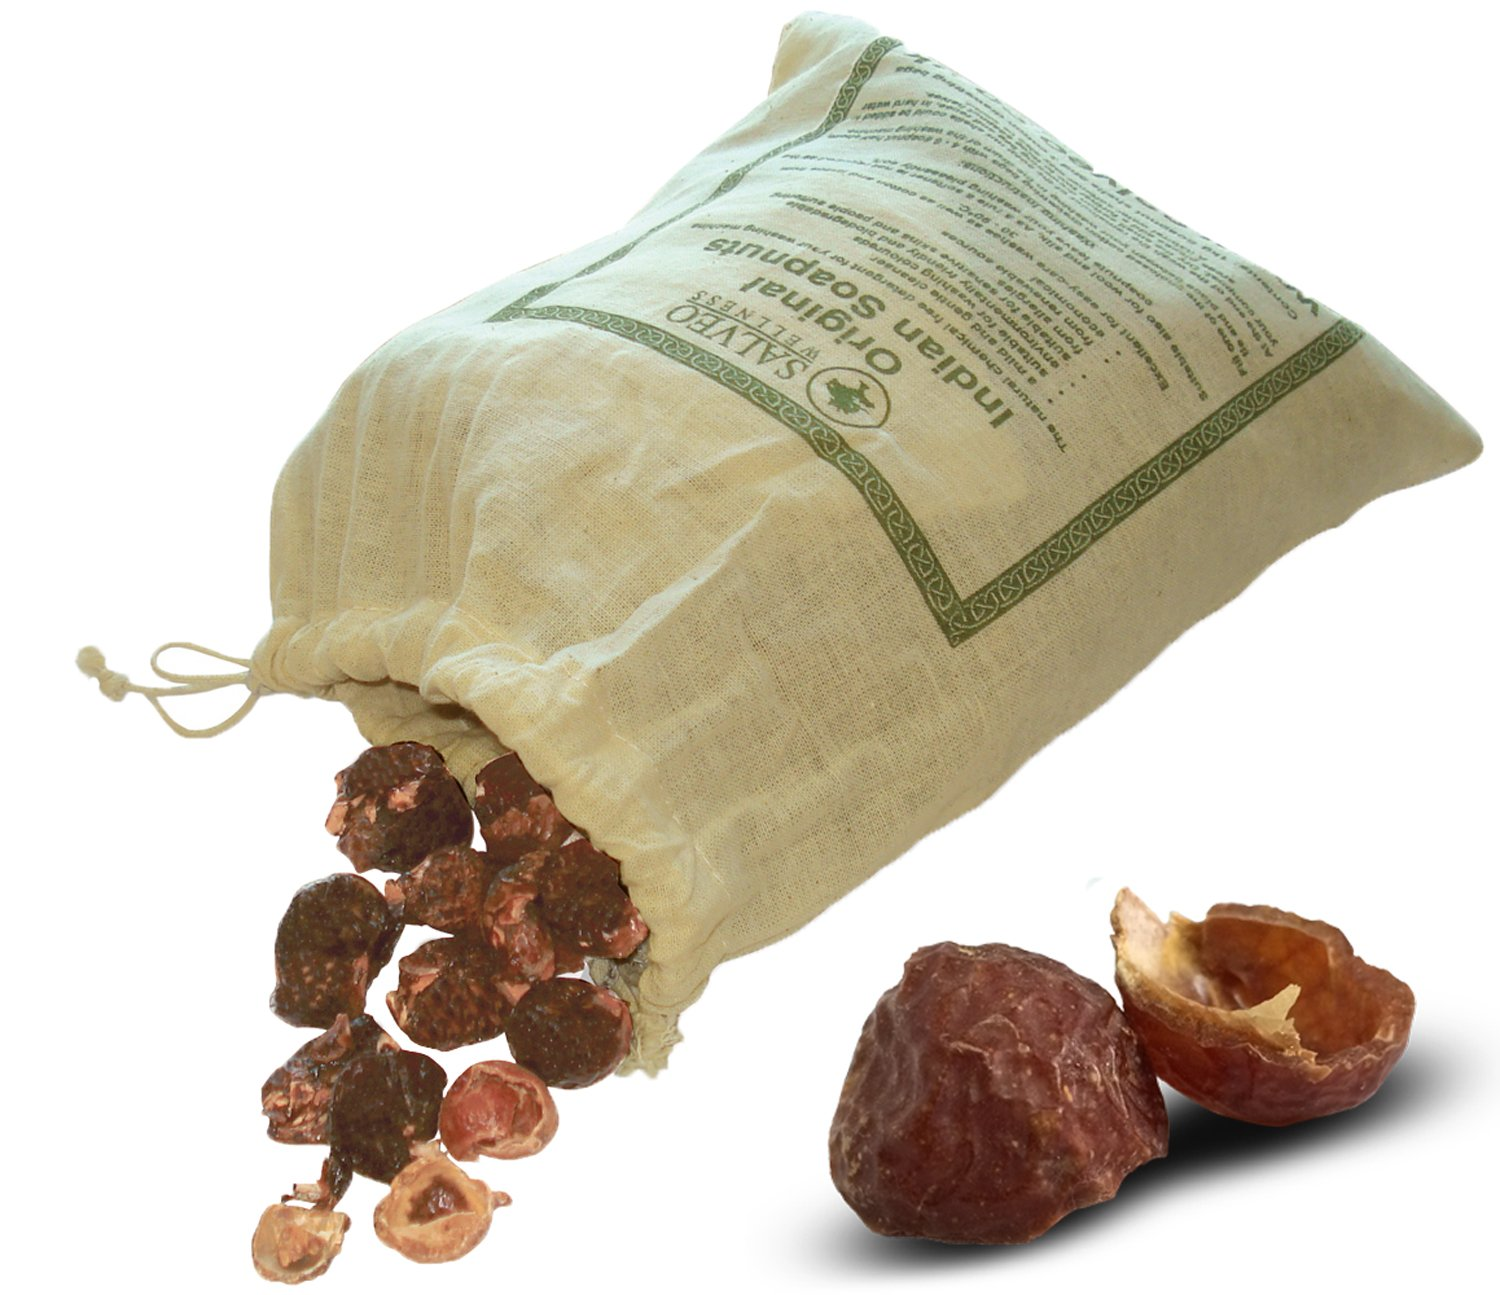 Salveo Natural indio Nueces de jabón 1 kg - Detergente ...